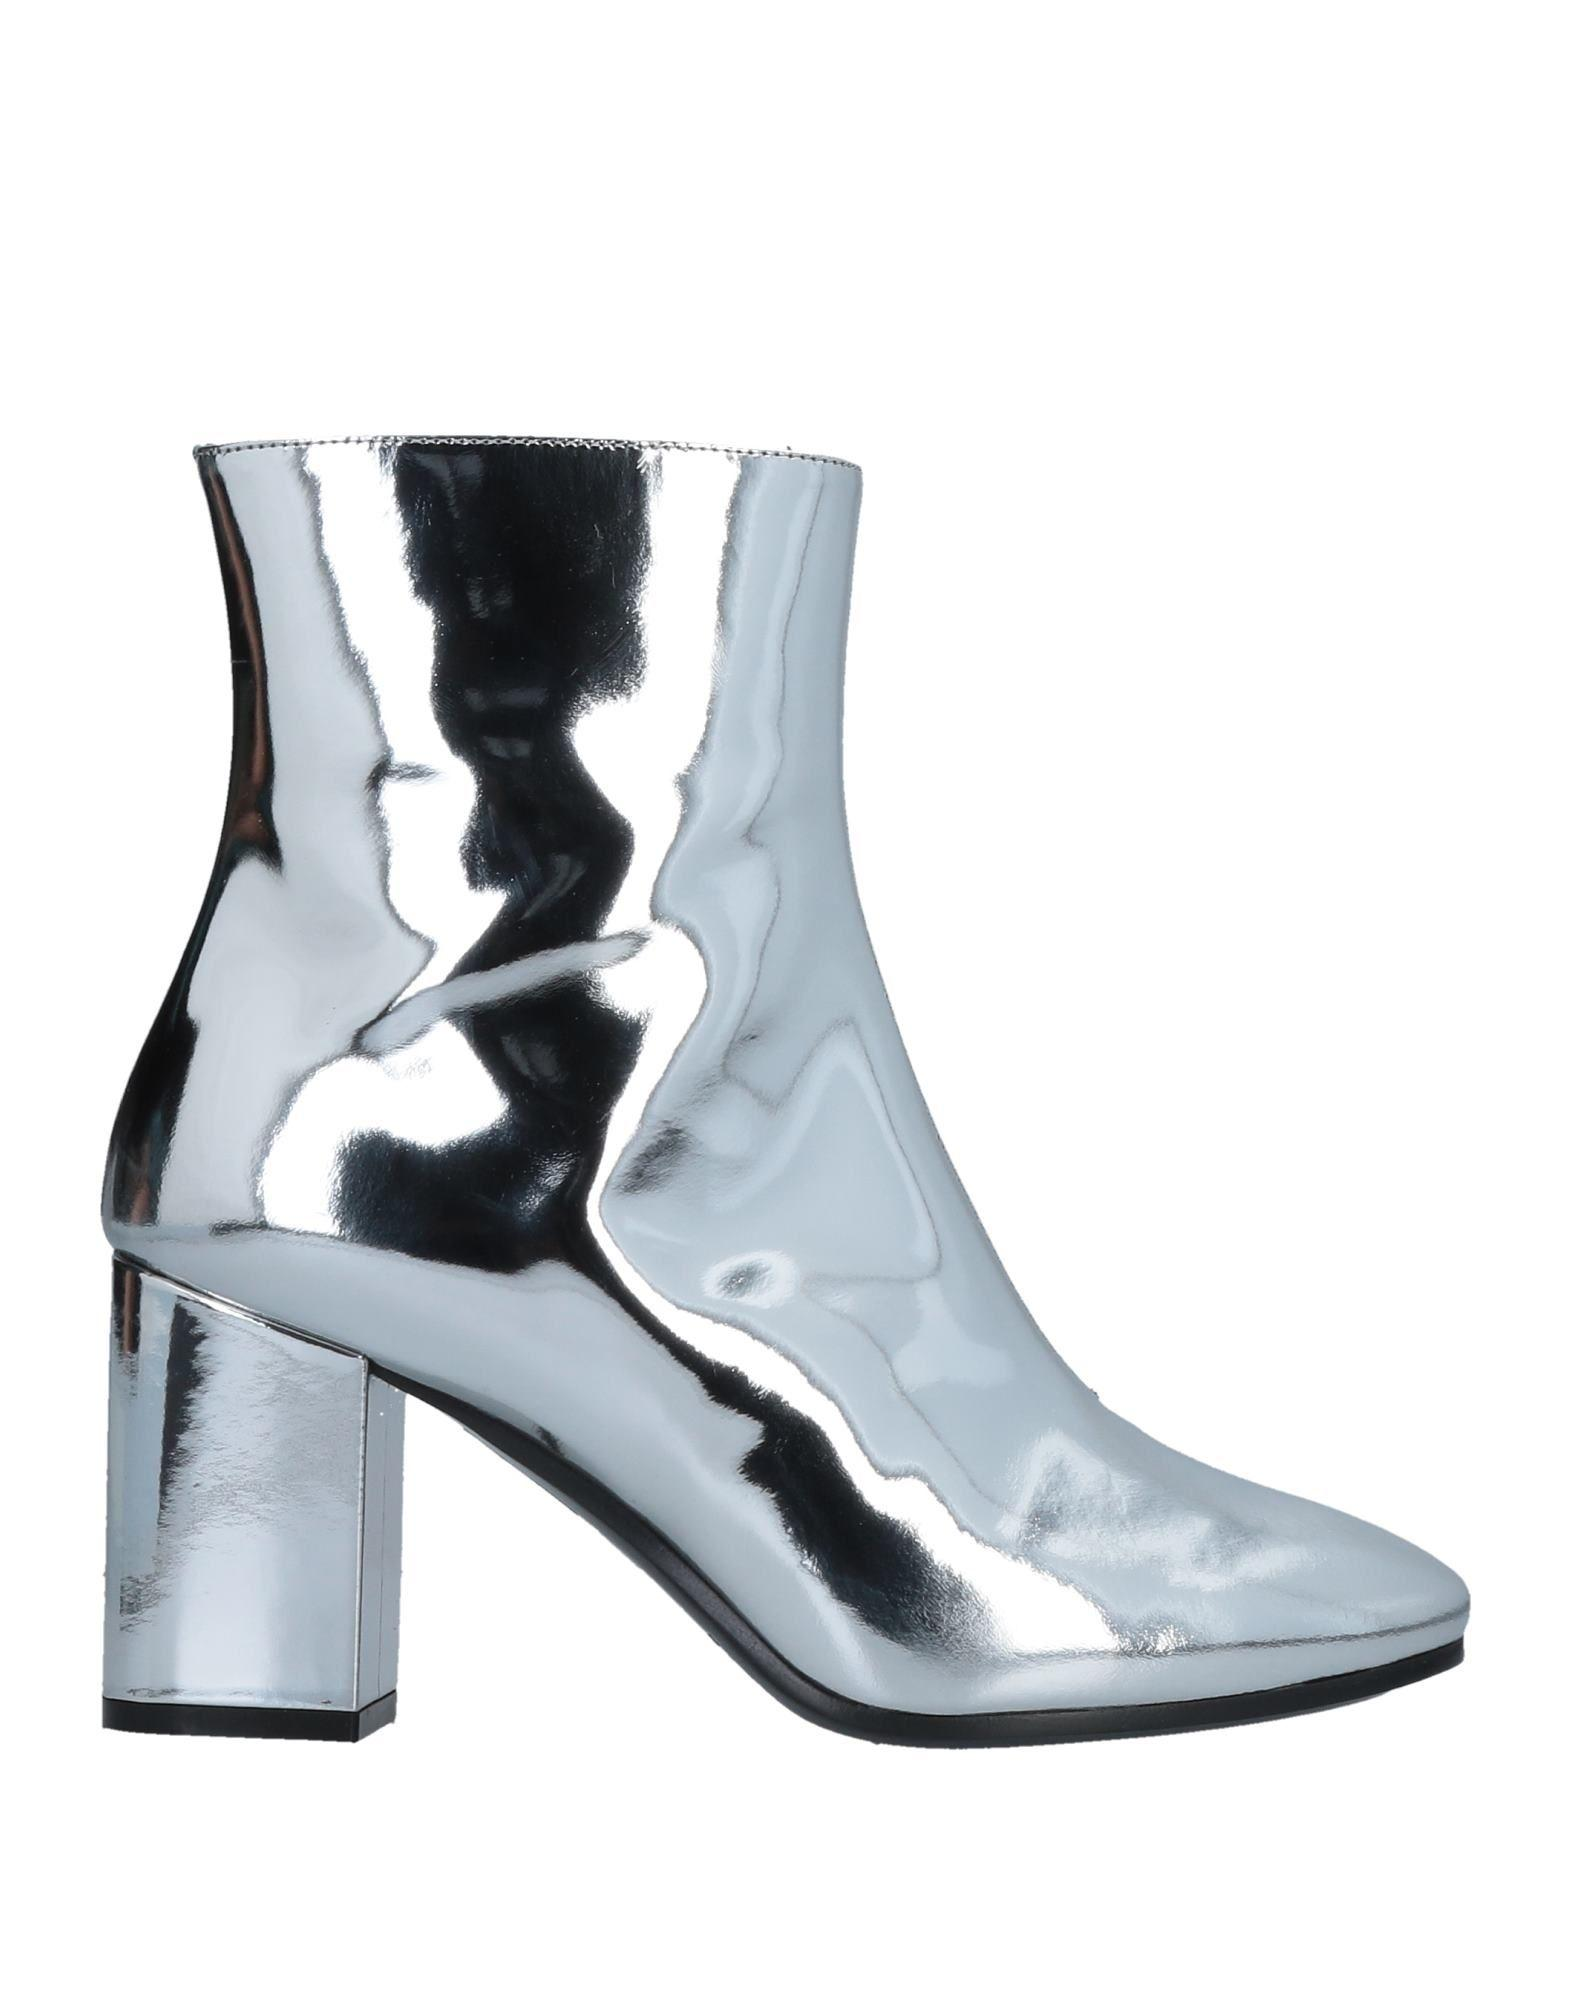 e708e18a537 Silver Ville Patent Leather Heeled Ankle Boots